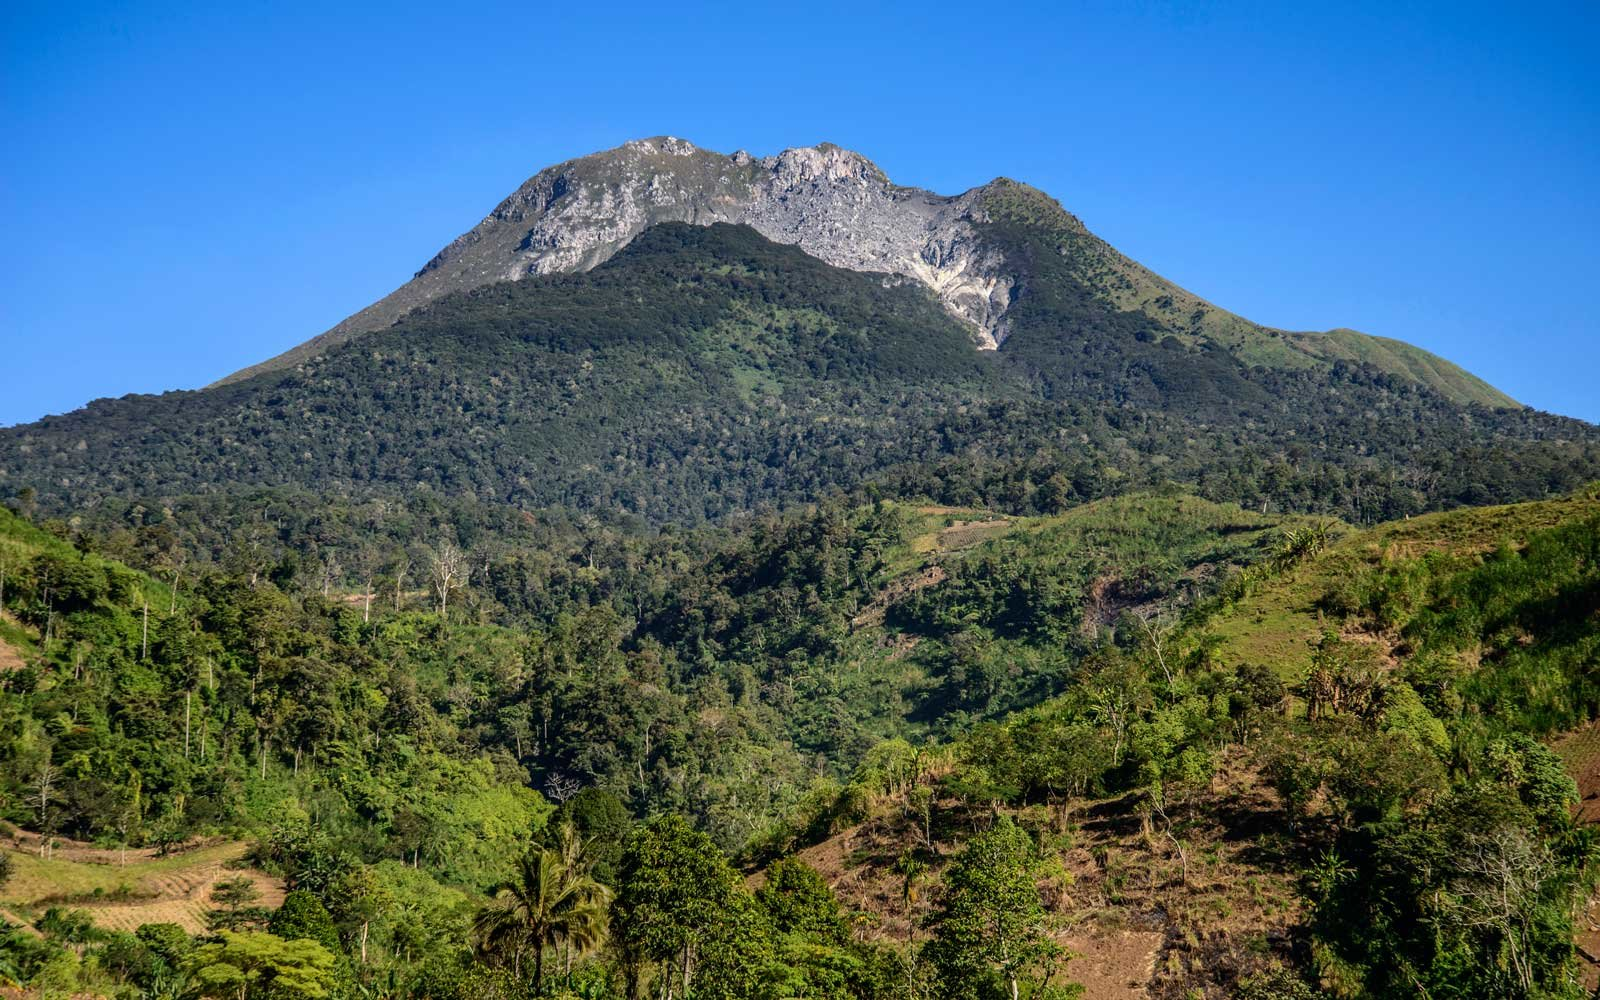 Philippines, Mindanao island, Davao region, Mount Apo national park